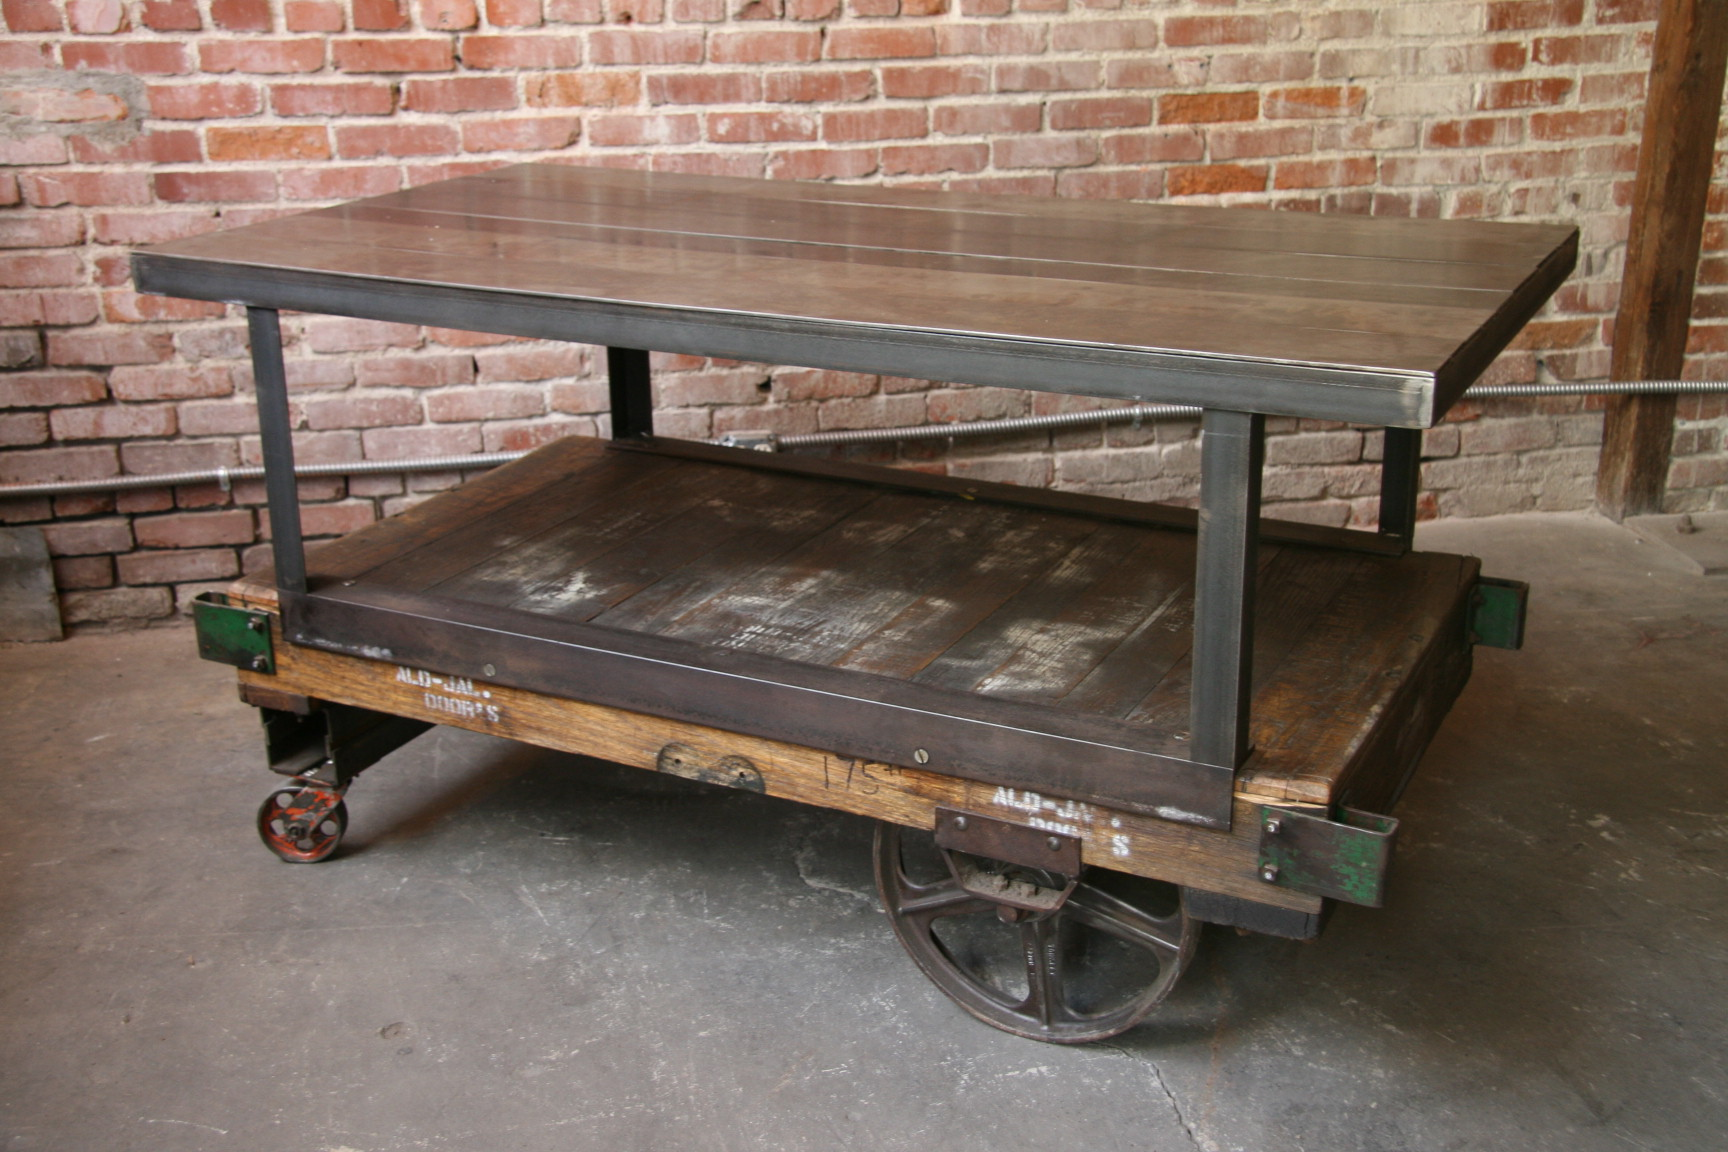 Factory caster vintage industrial furniture - Cool Factory Cart